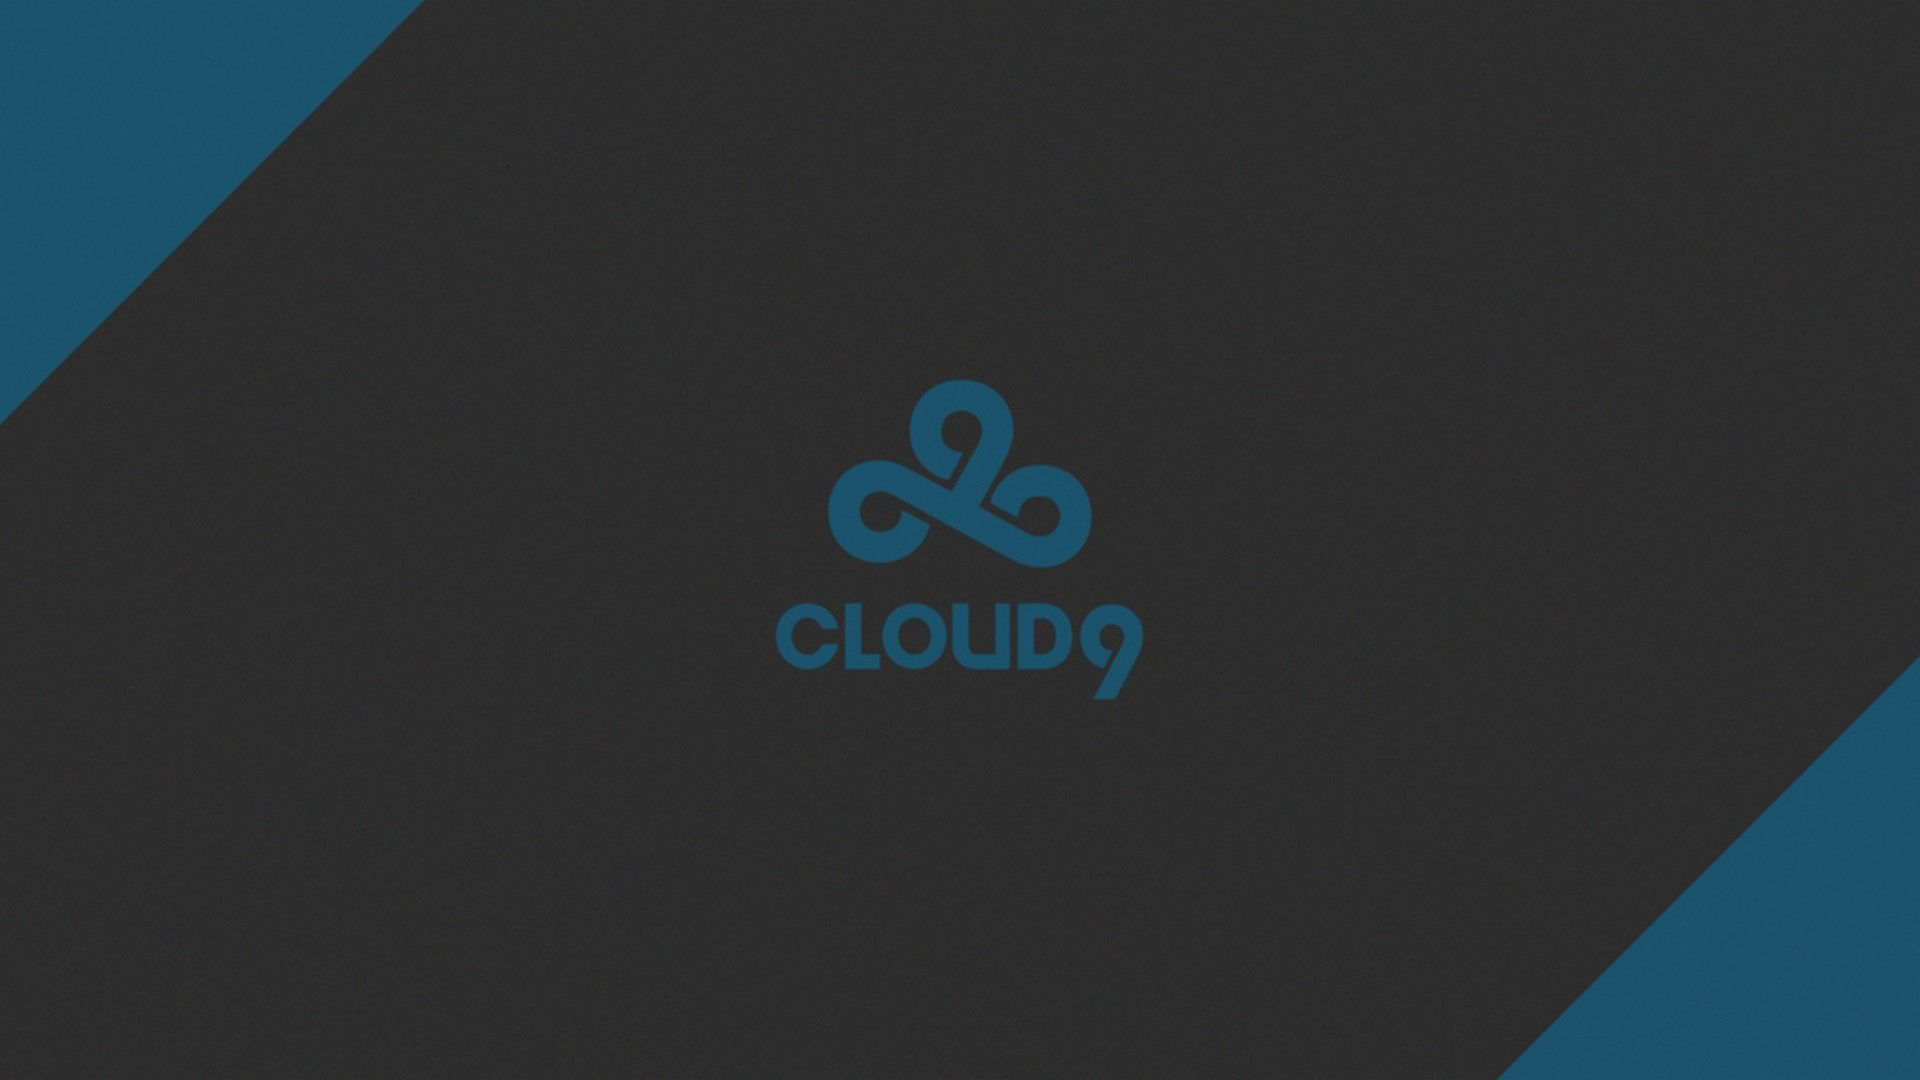 Cloud 9 Games Desktop Wallpaper